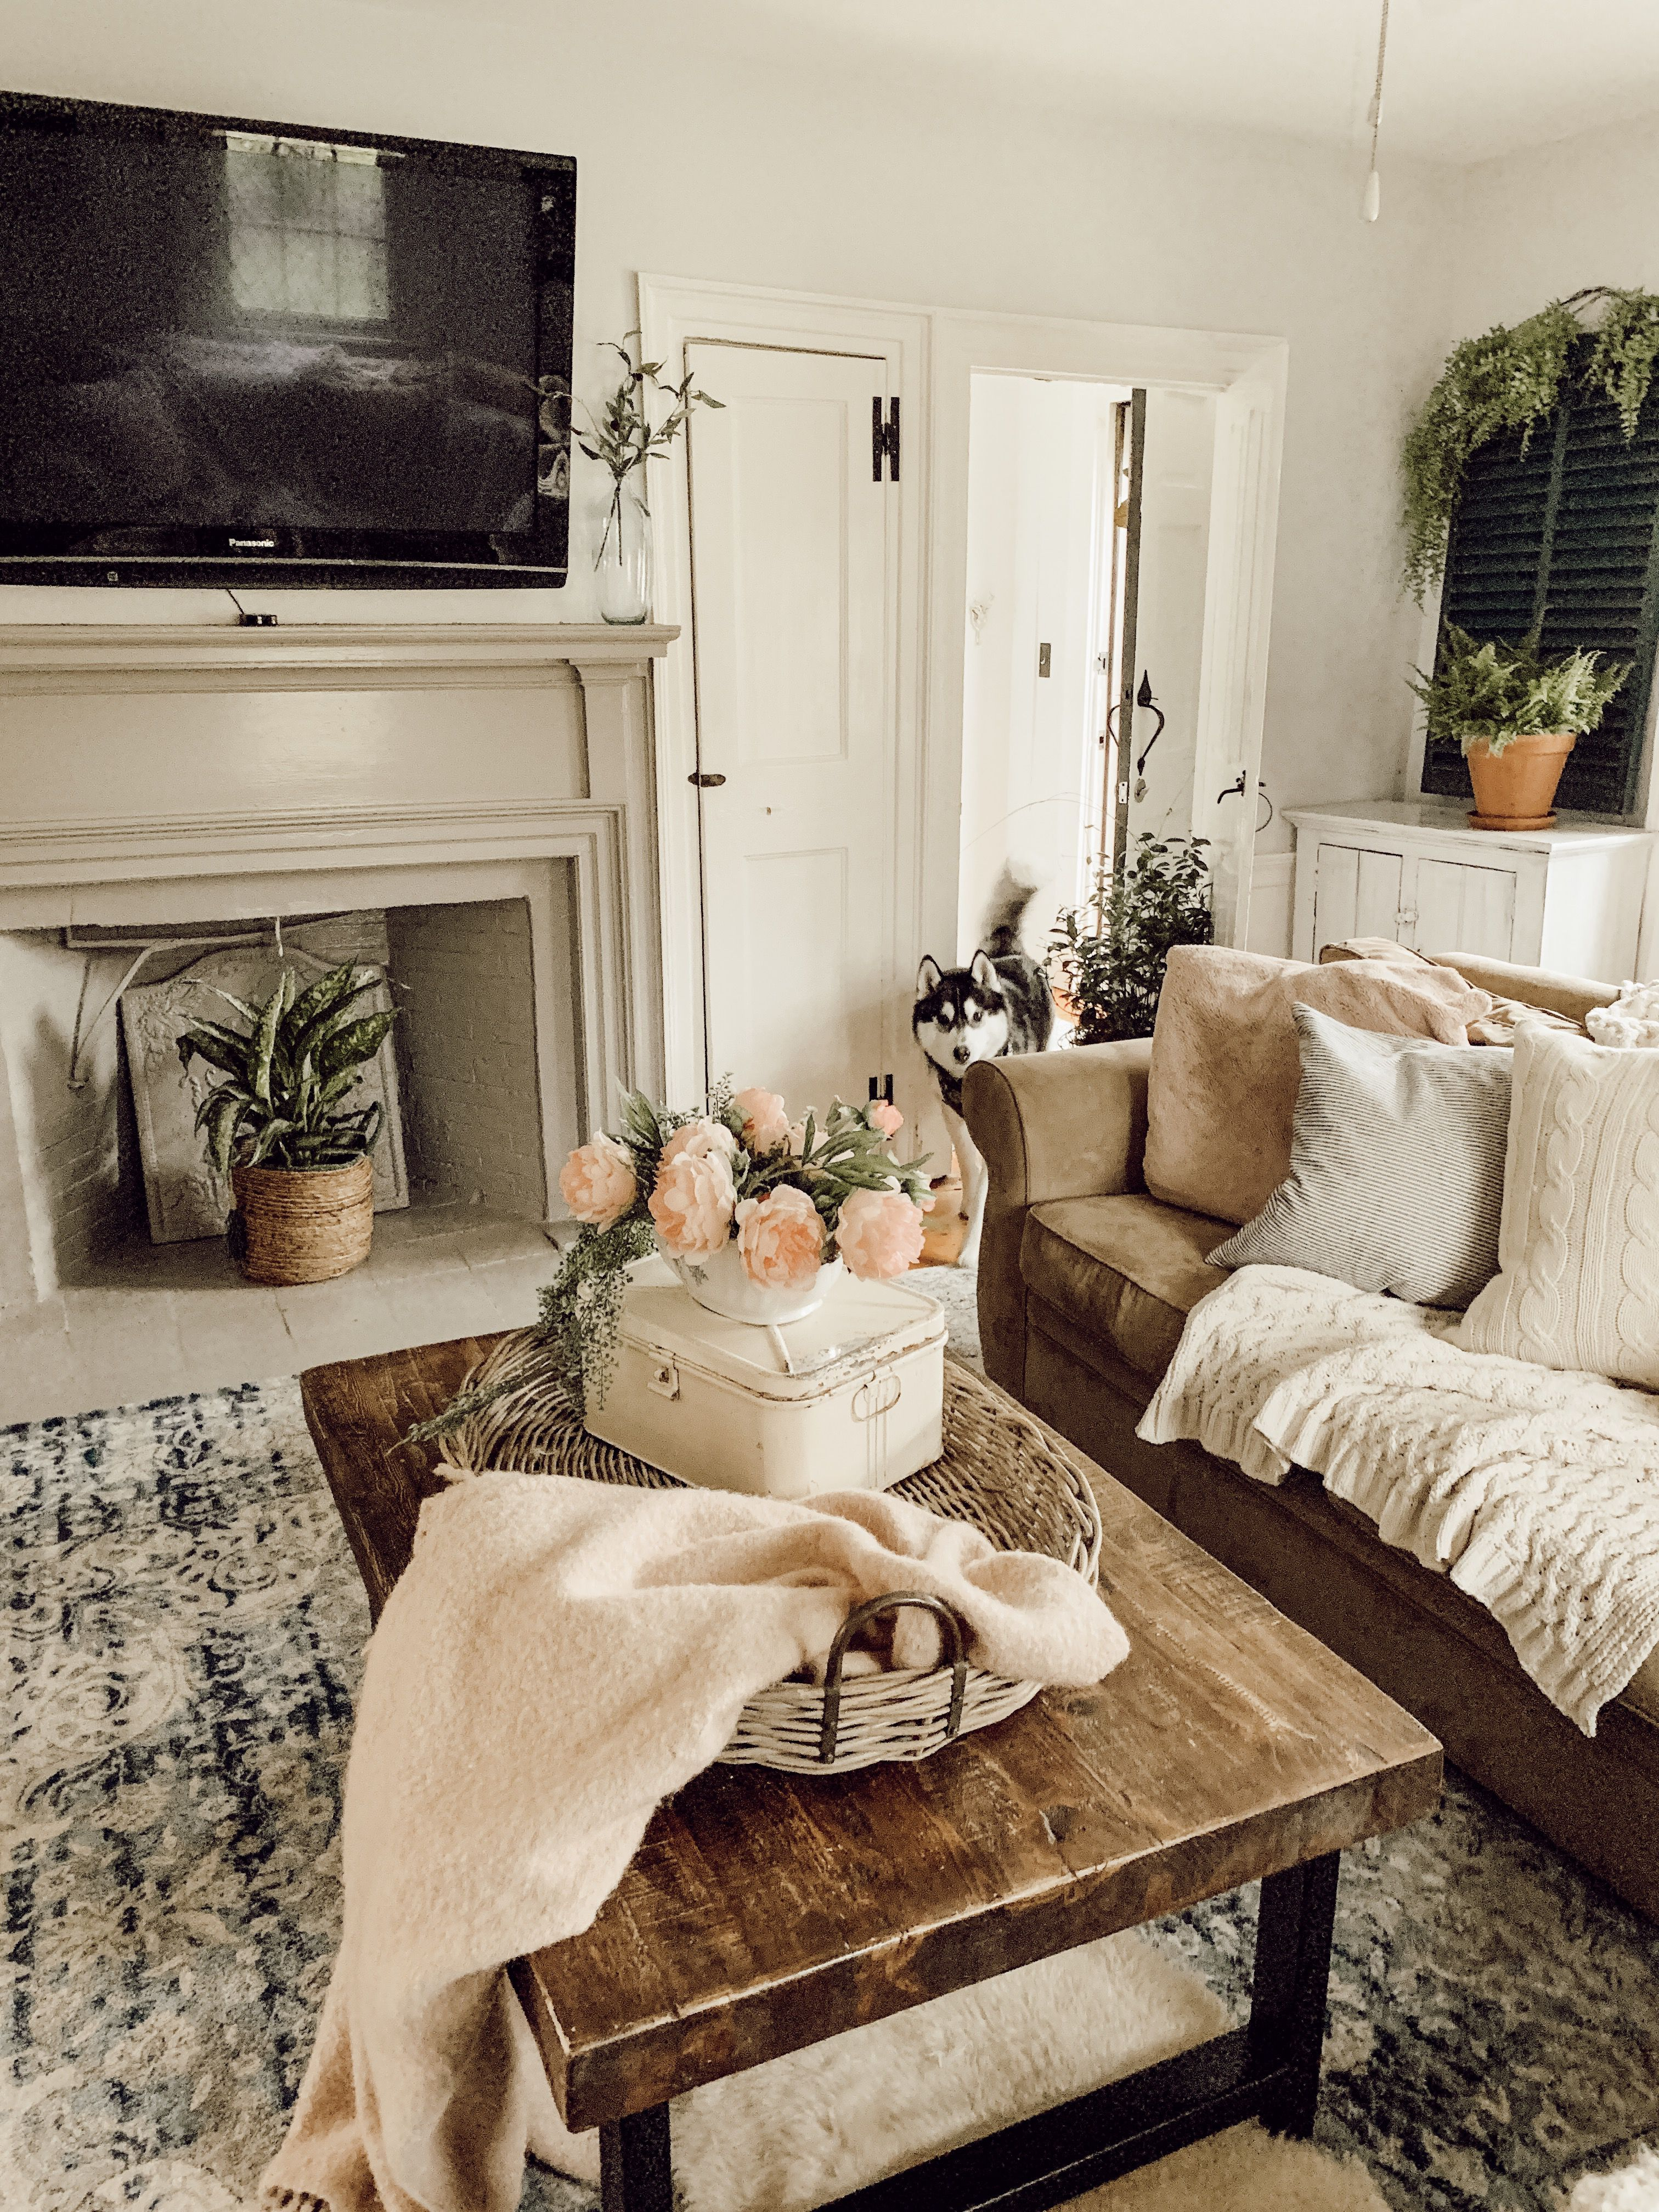 Wondrous Vintage Living Room Farmhouse Into An Attractive Living Room Vintage Living Room Farm House Living Room Pottery Barn Living Room #vintage #living #room #decorating #ideas